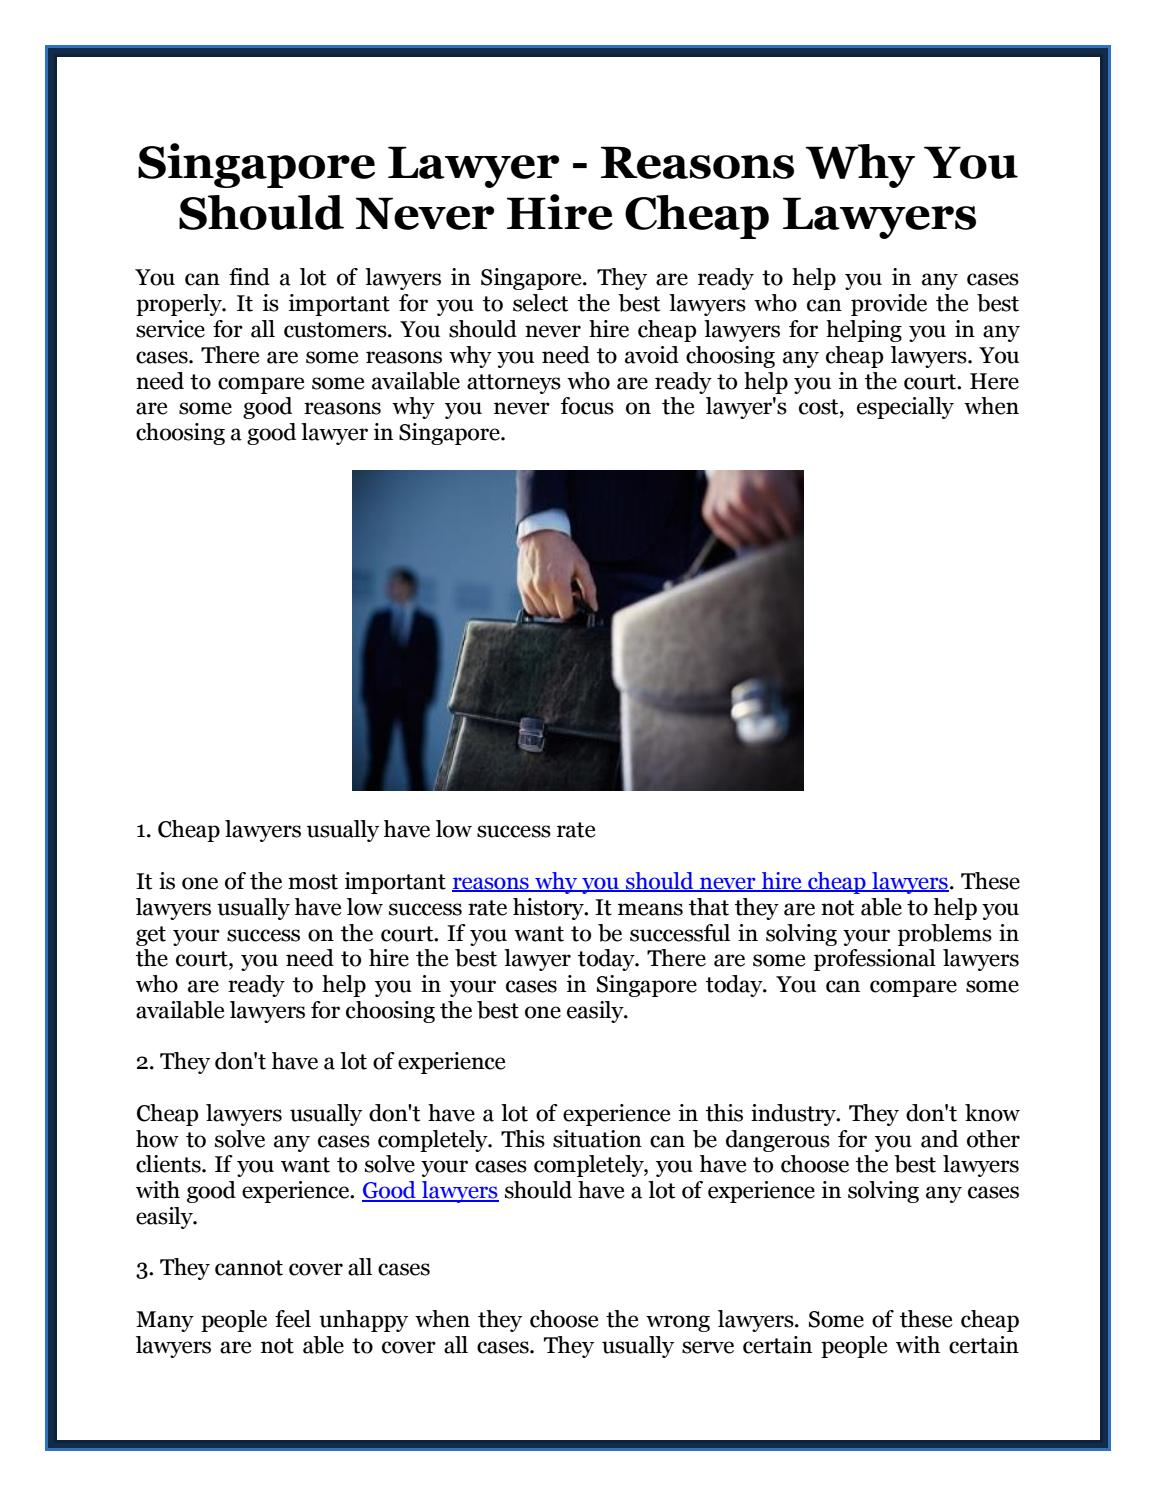 Singapore Lawyer - Reasons Why You Should Never Hire Cheap